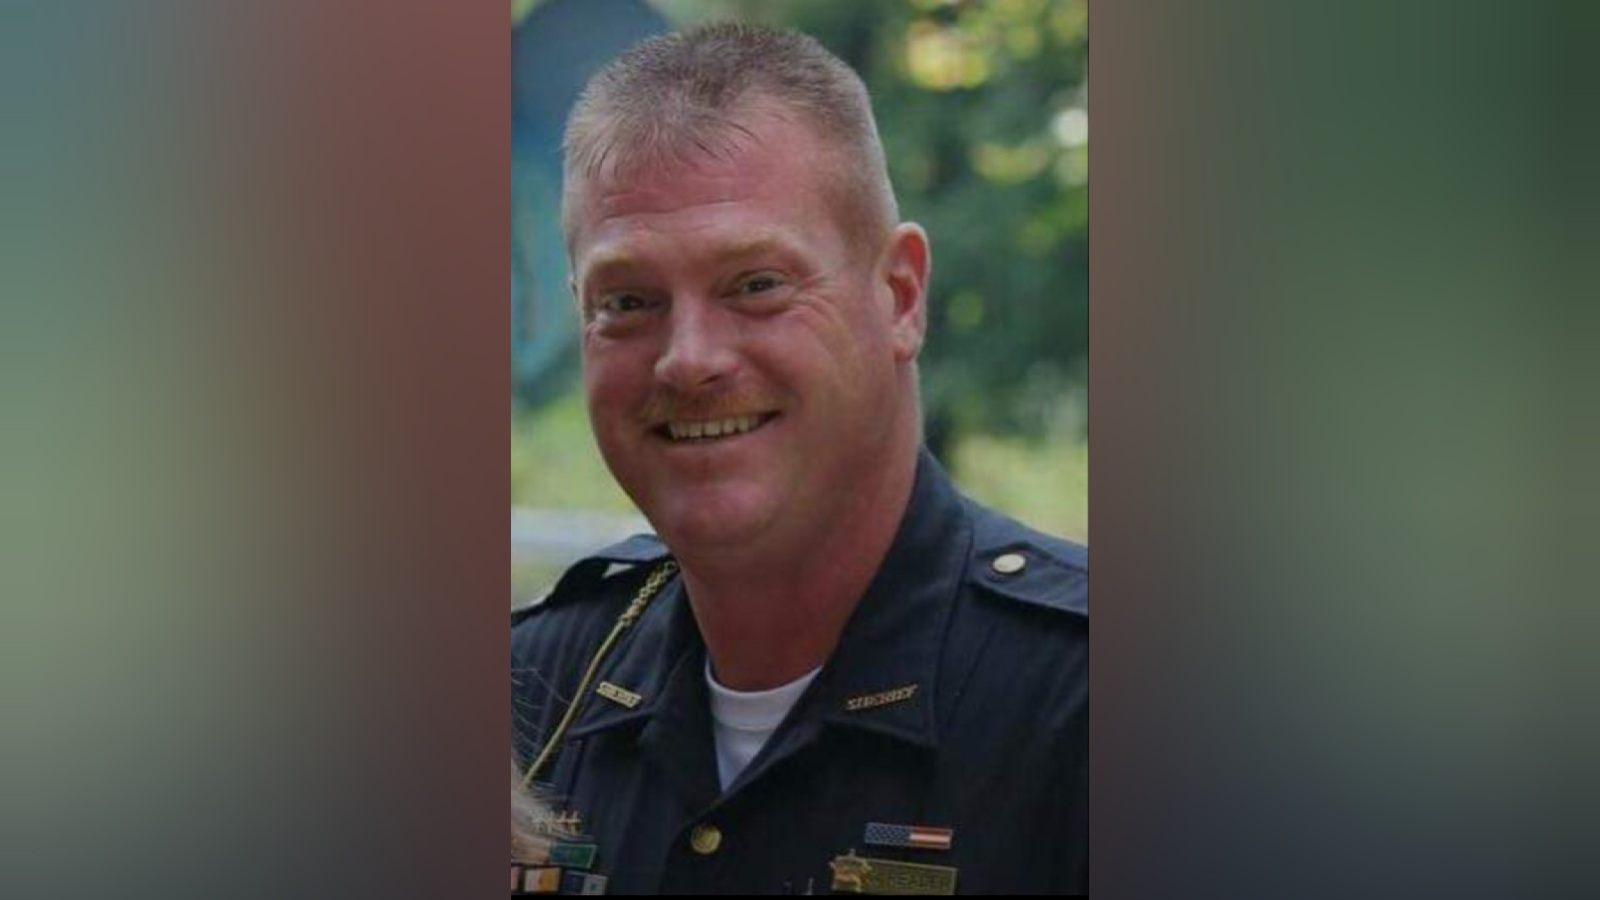 Pike County Sheriff Indicted on 16 Counts of Theft, Tampering and